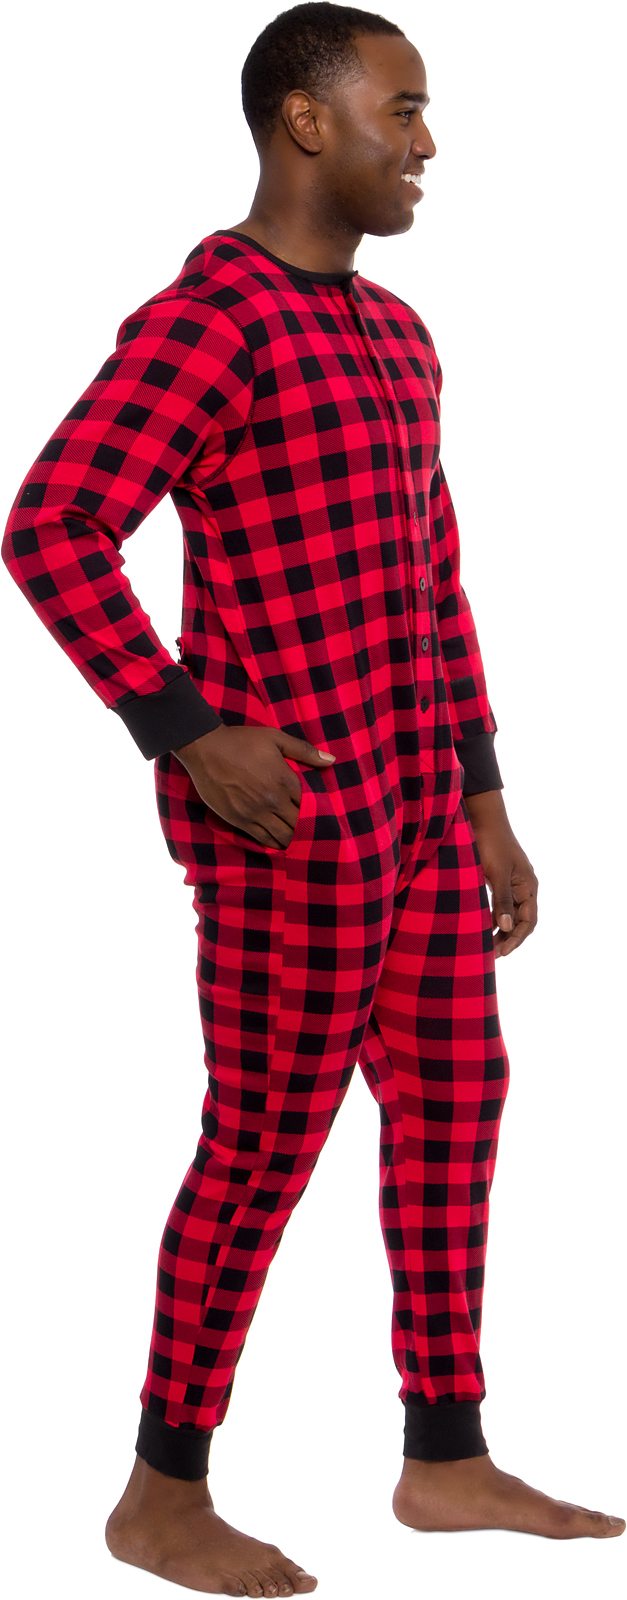 Ross Michaels Mens Buffalo Plaid One Piece Union Suit